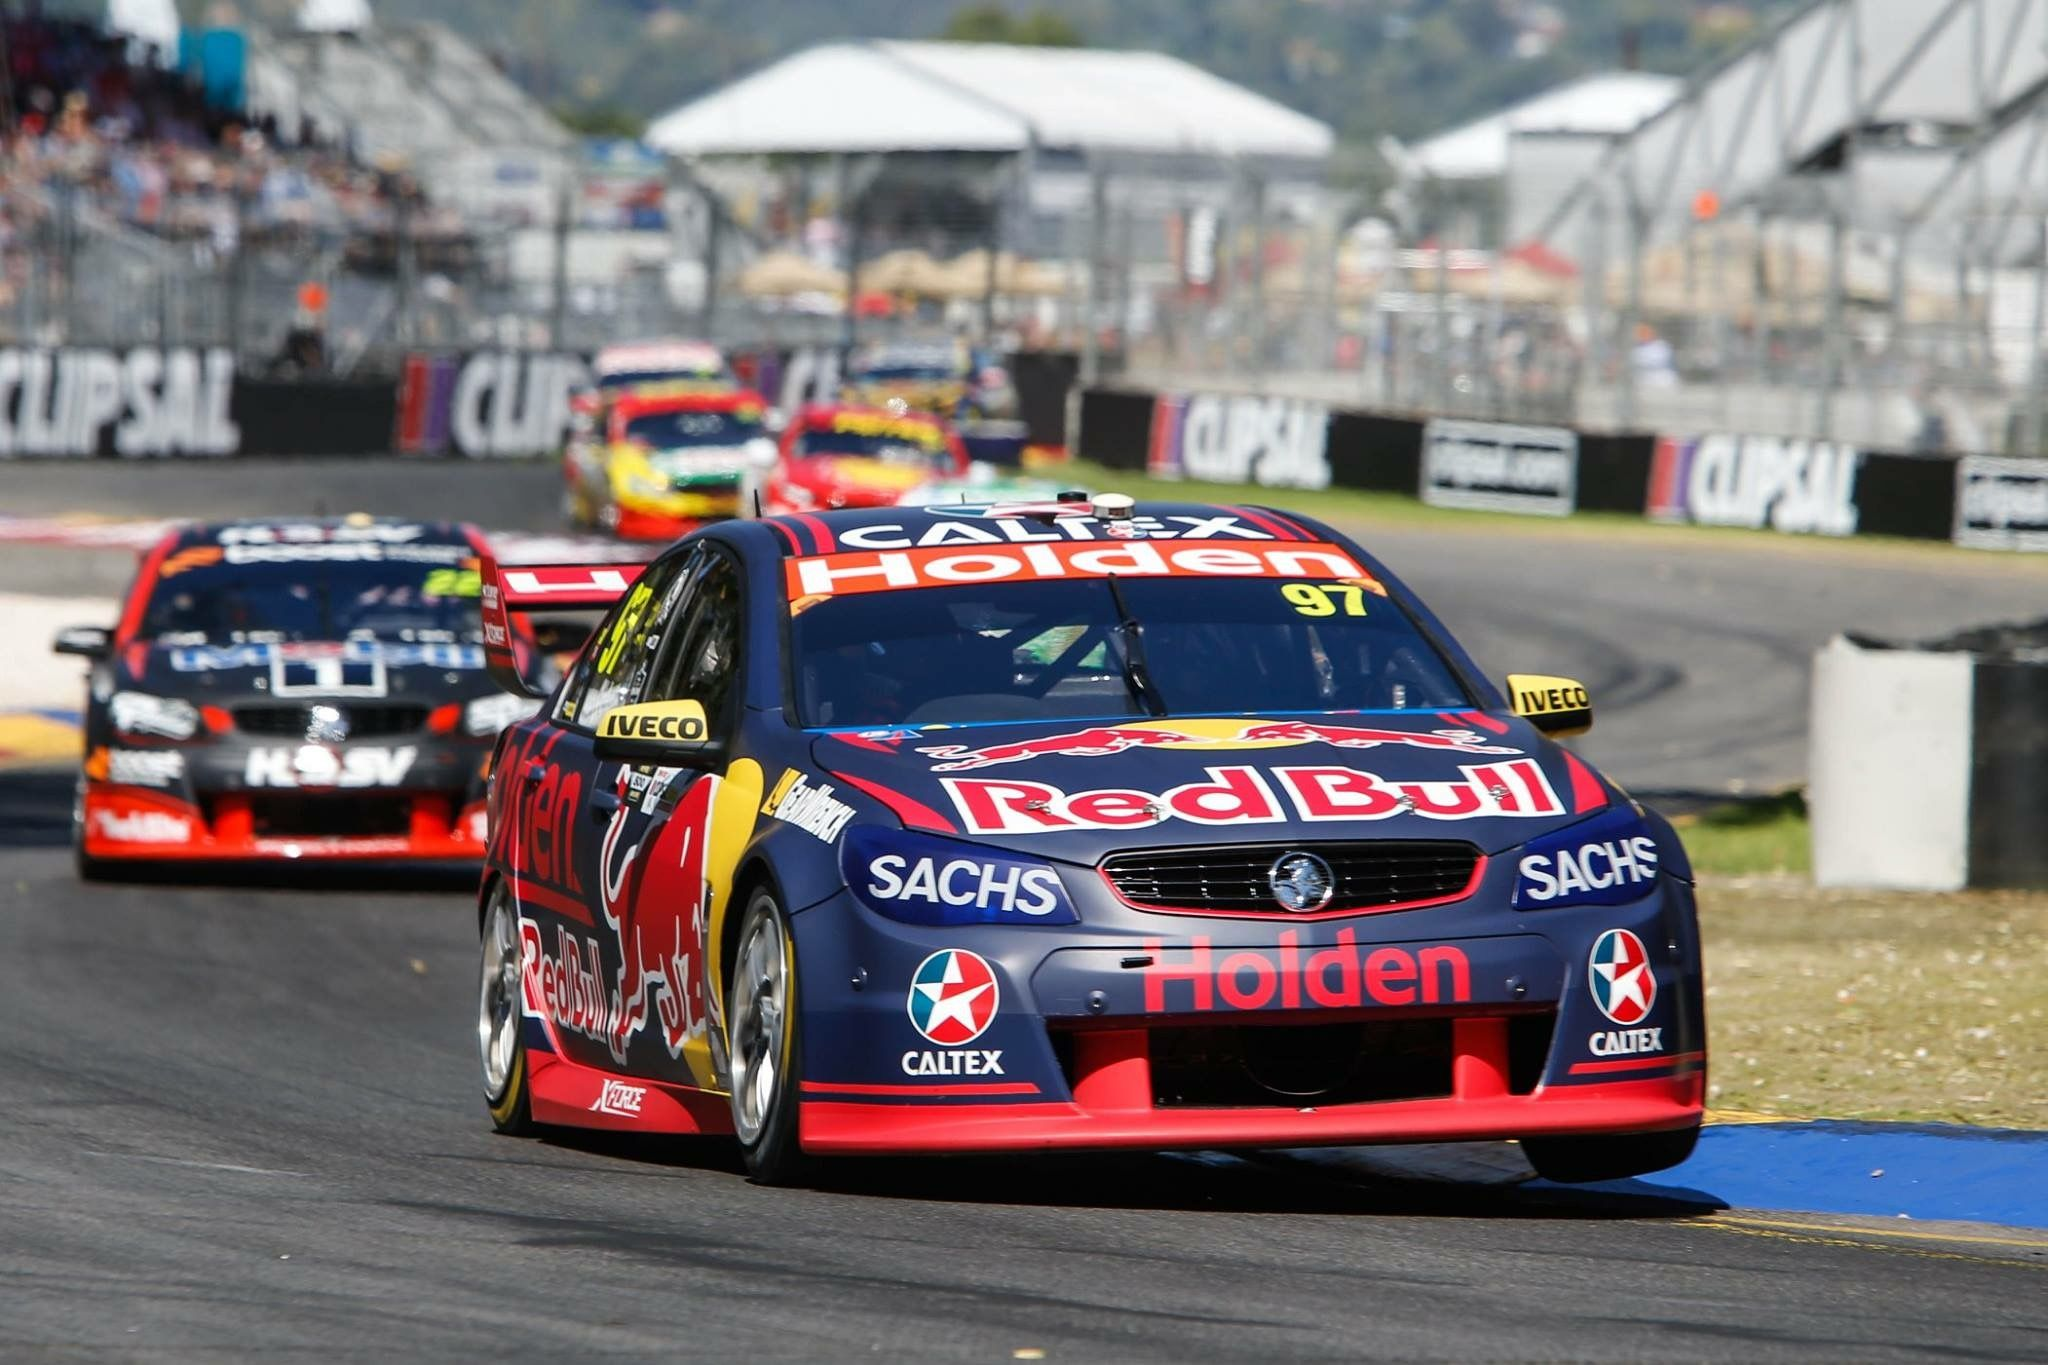 Pin On V8 Supercars